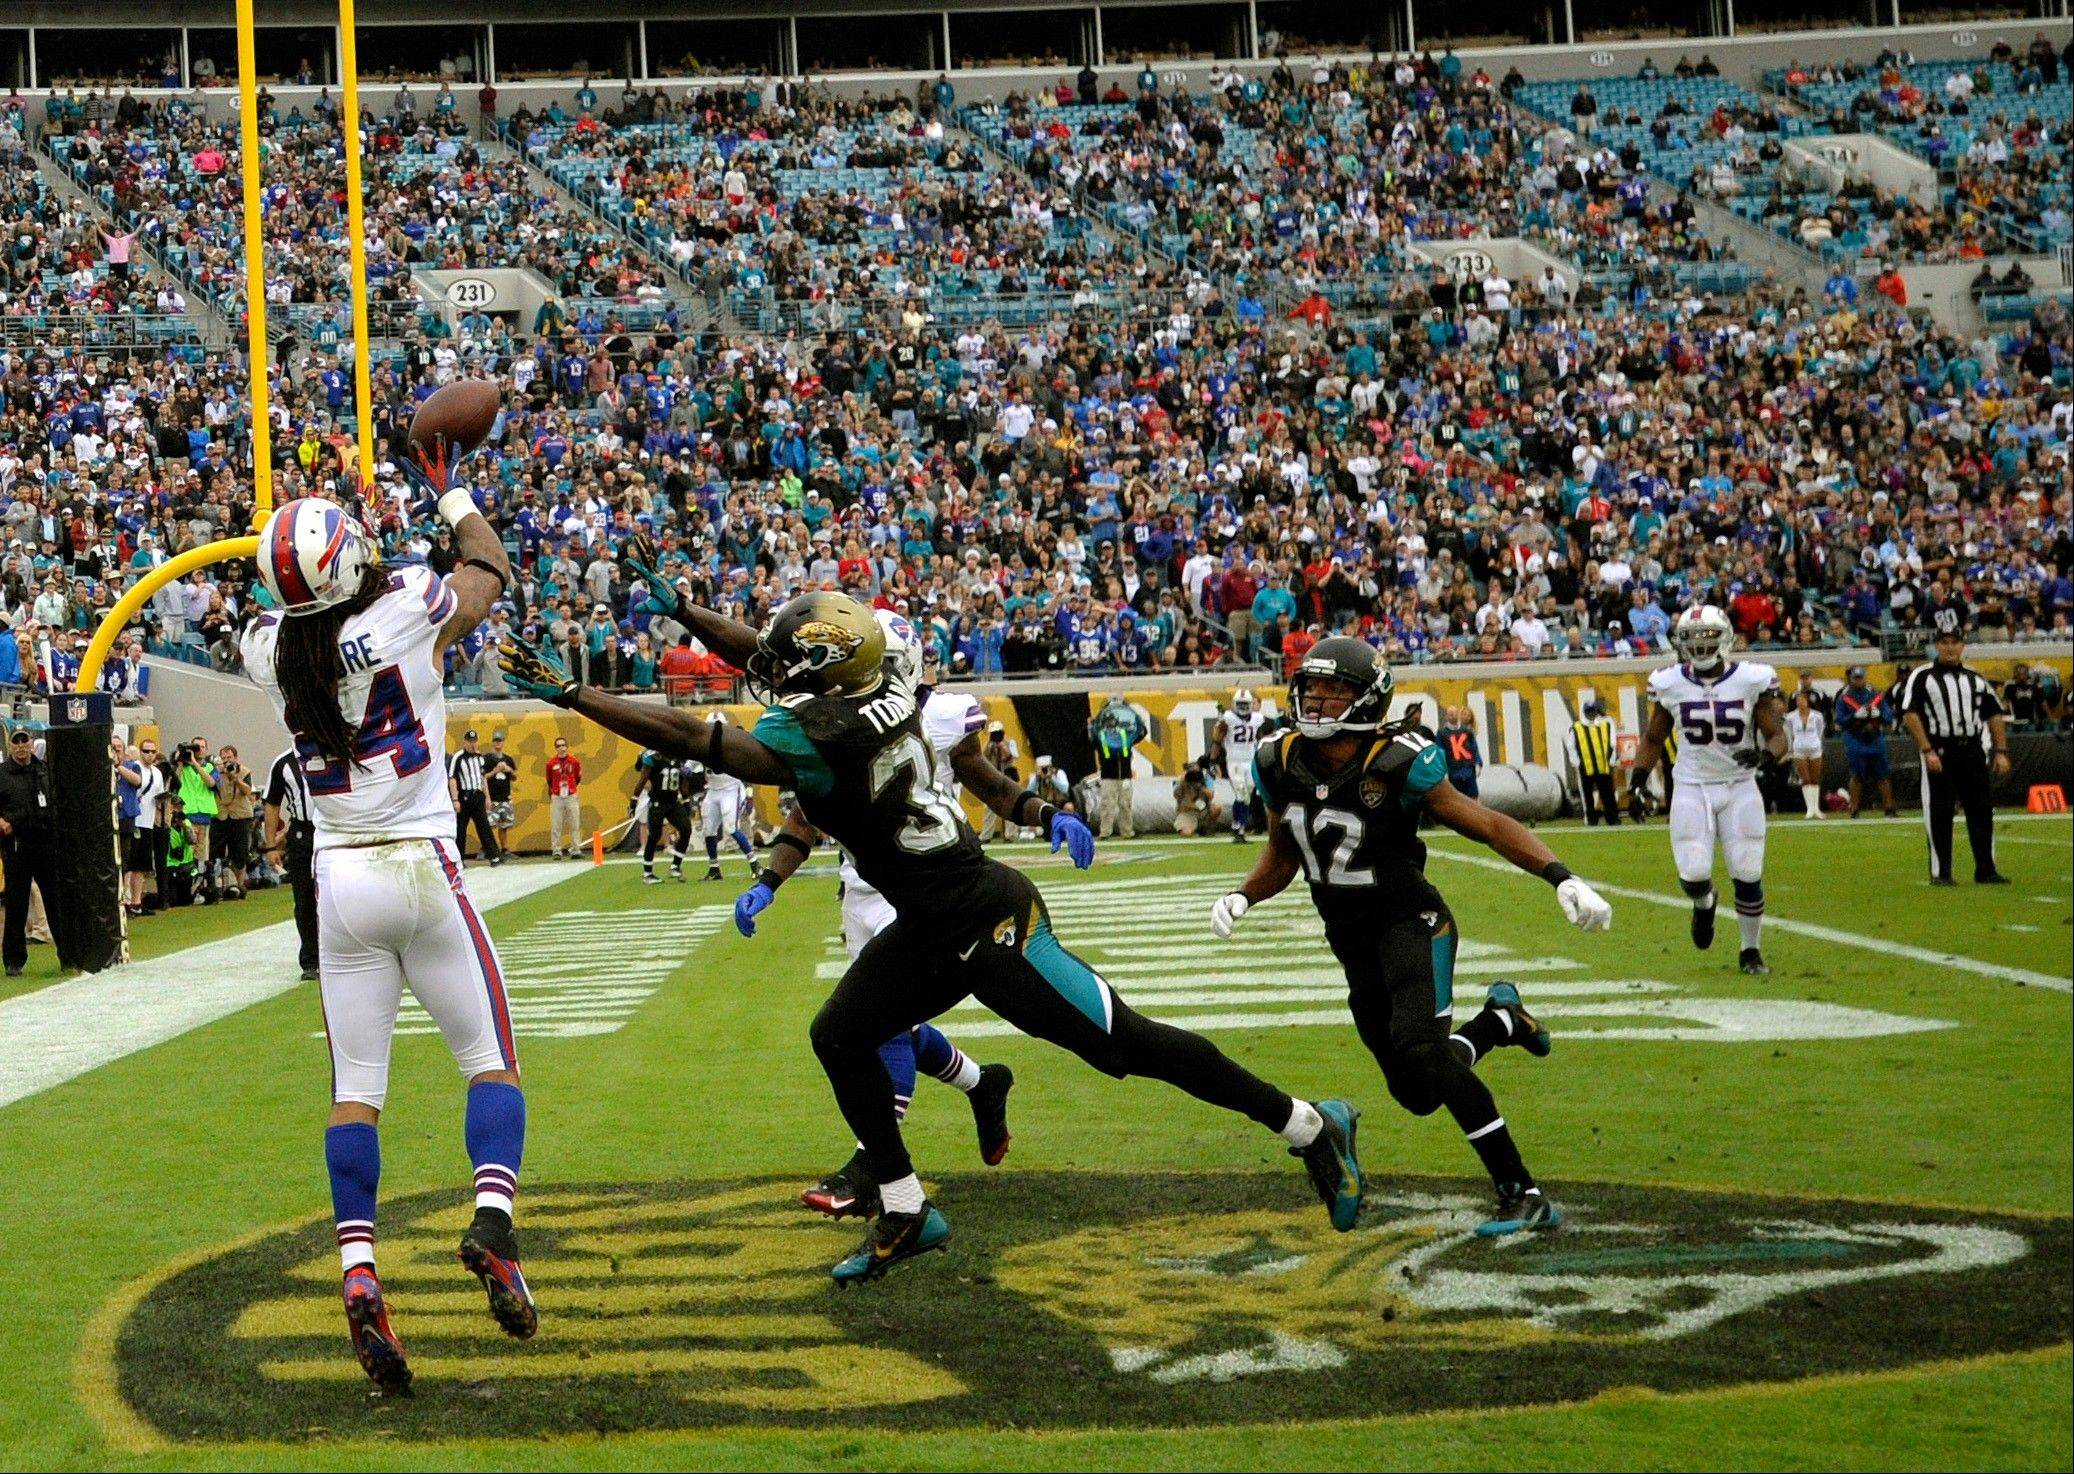 Buffalo Bills cornerback Stephon Gilmore (24) intercepts a pass in the end zone intended for Jacksonville Jaguars running back Jordan Todman (30) during the second half of an NFL football game, Sunday, Dec. 15, 2013, in Jacksonville, Fla. The Bills beat the Jaguars 27-20.